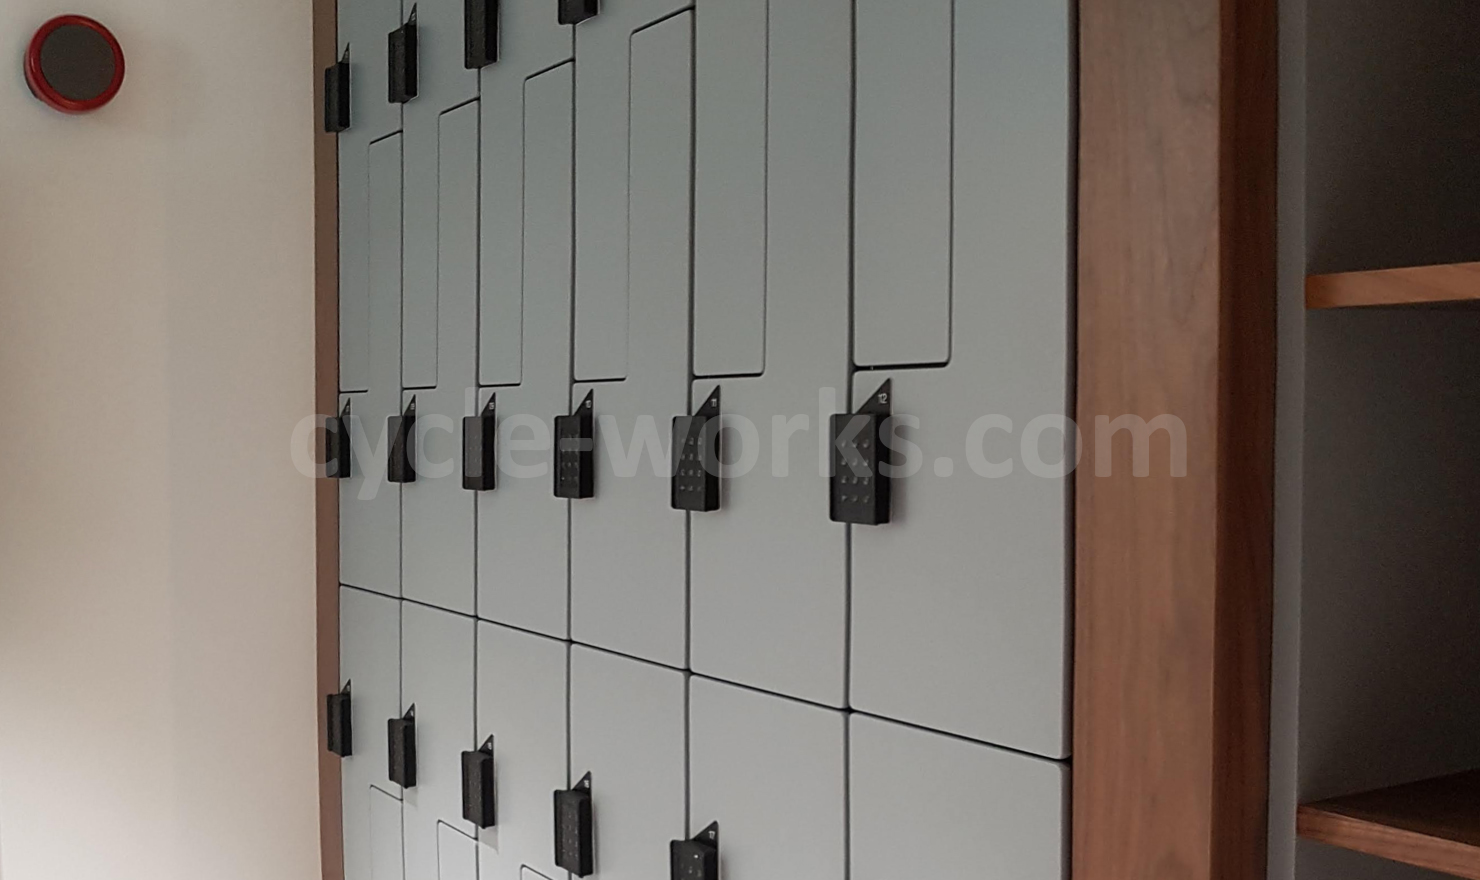 Ateepa Changing Room Lockers with Electronic Locking Keypad